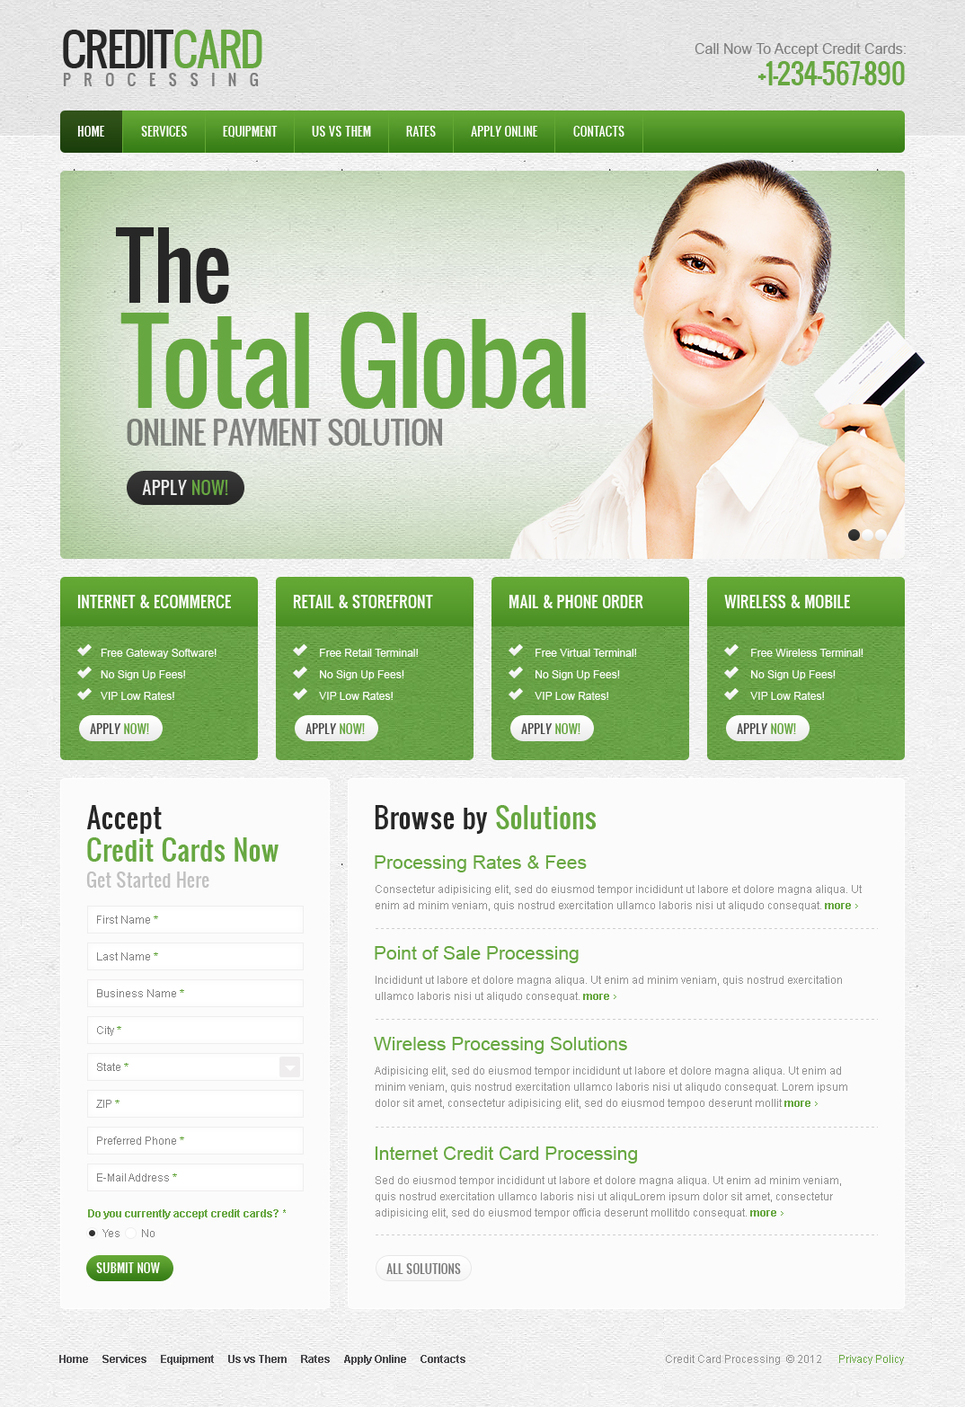 Bank Website Template Designed in Green Color - image